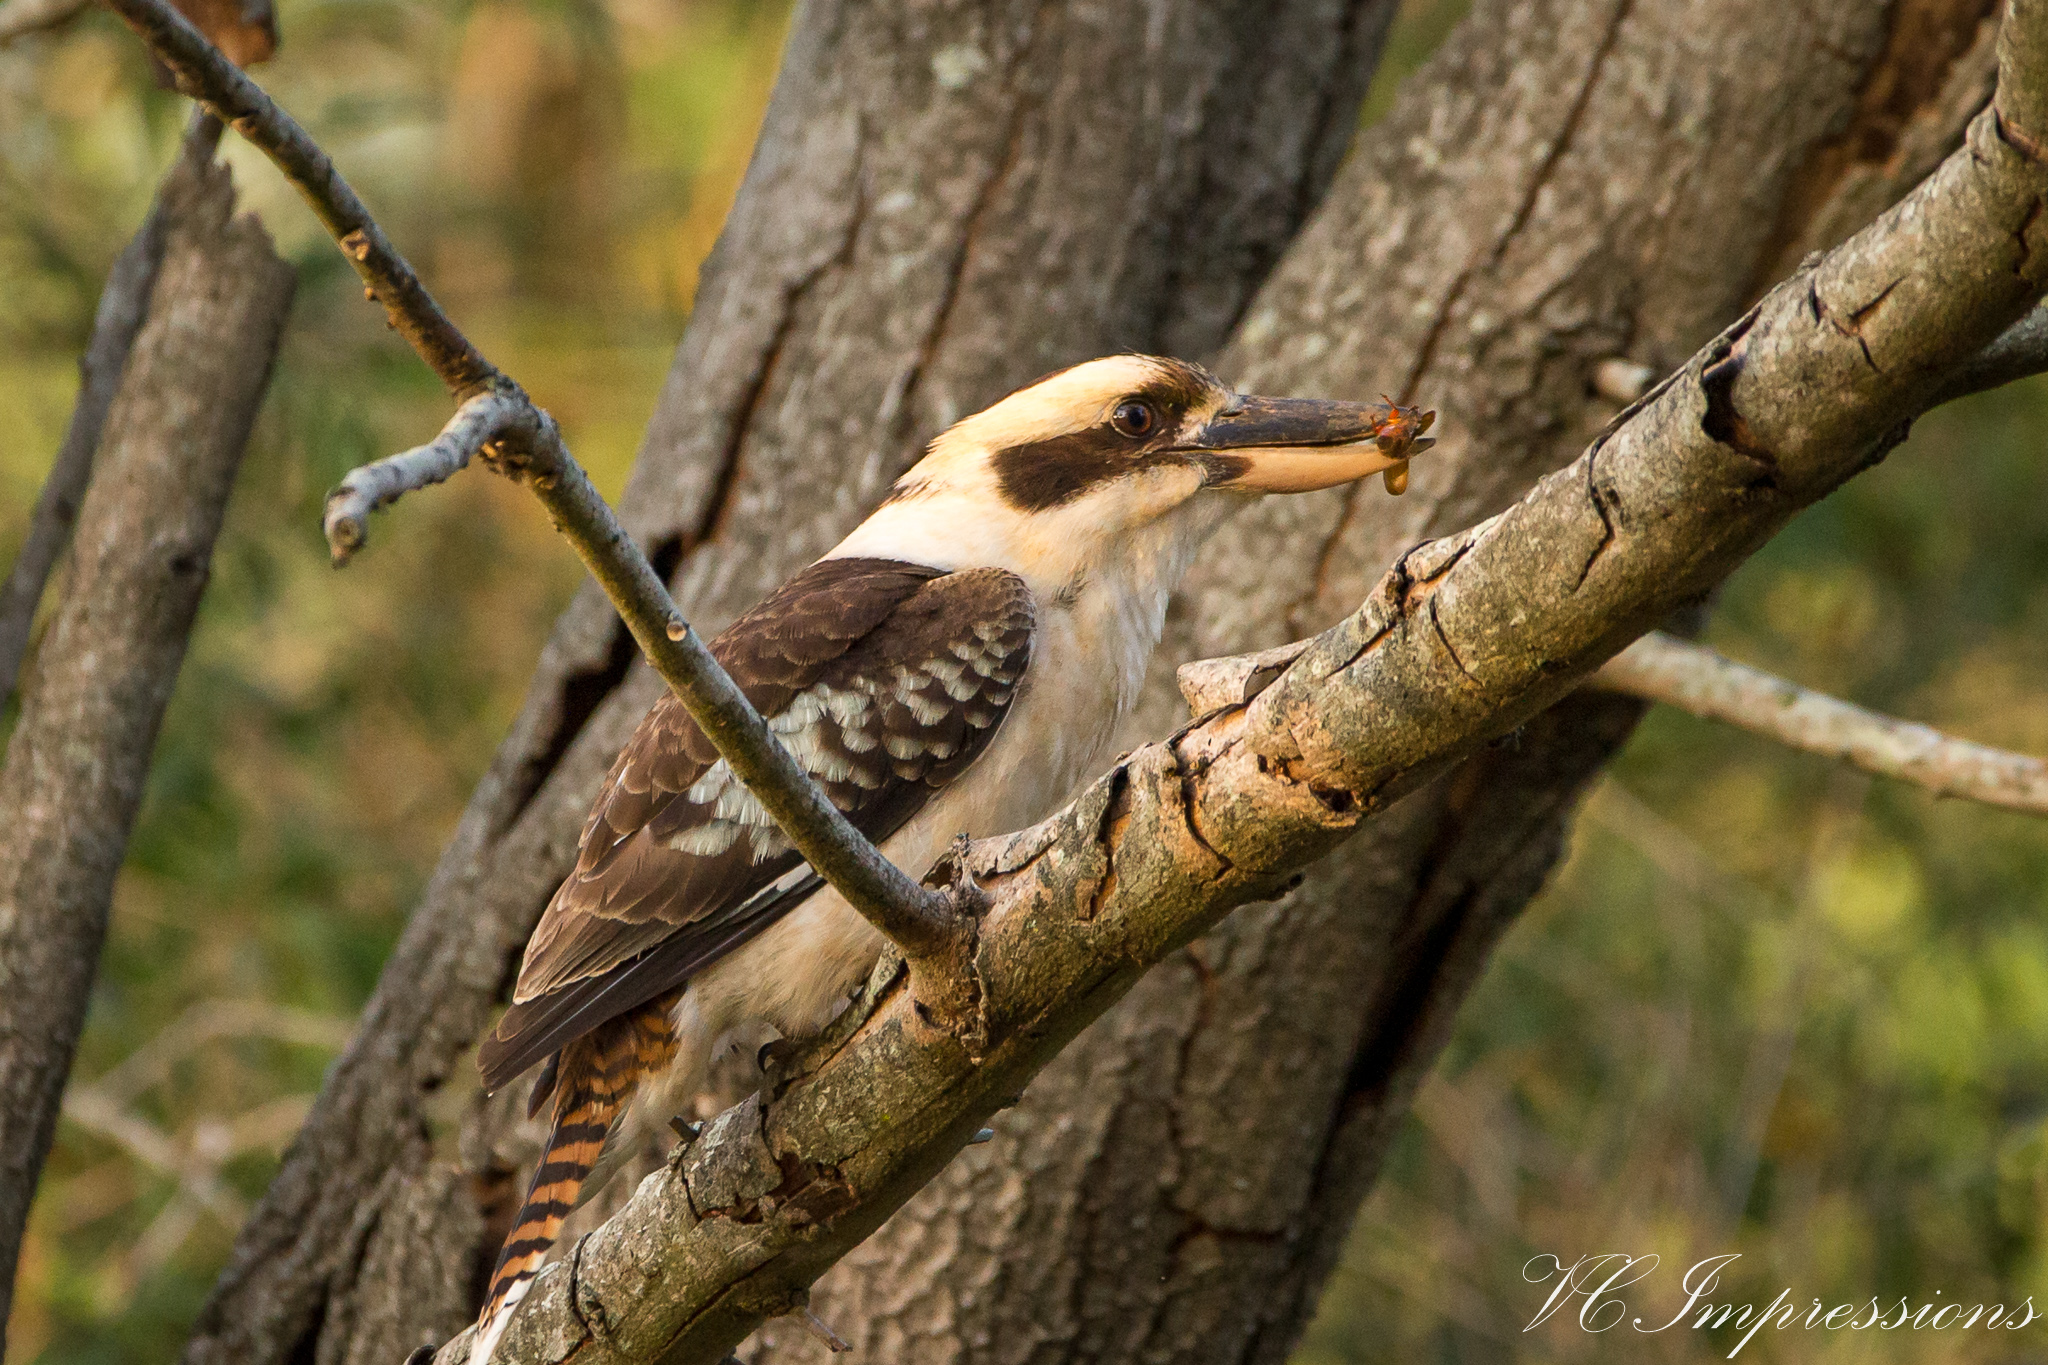 Pic of the Day – Kookabarra with Breakfast